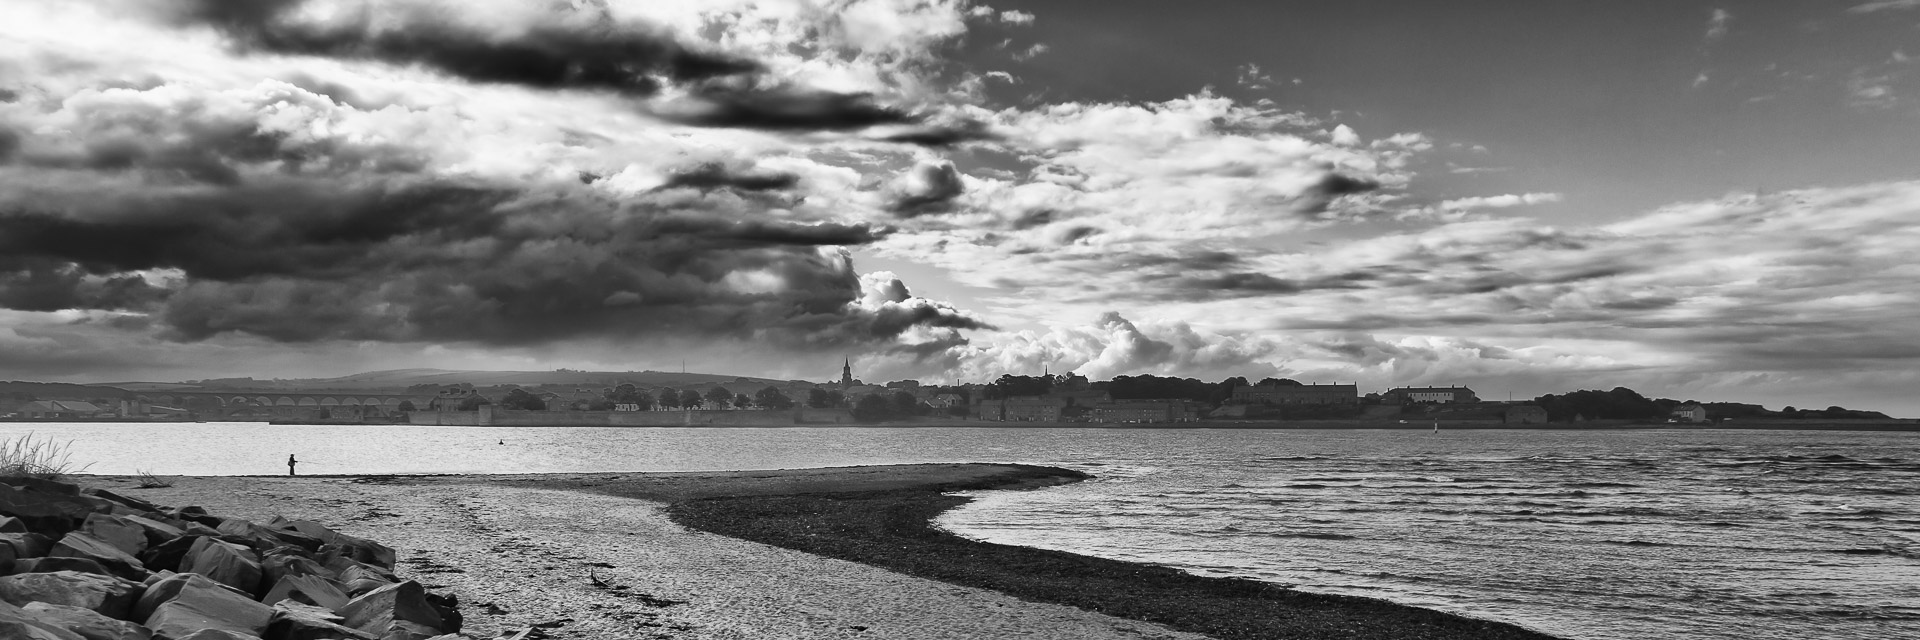 The Mouth of the River Tweed photo by Nick Prior